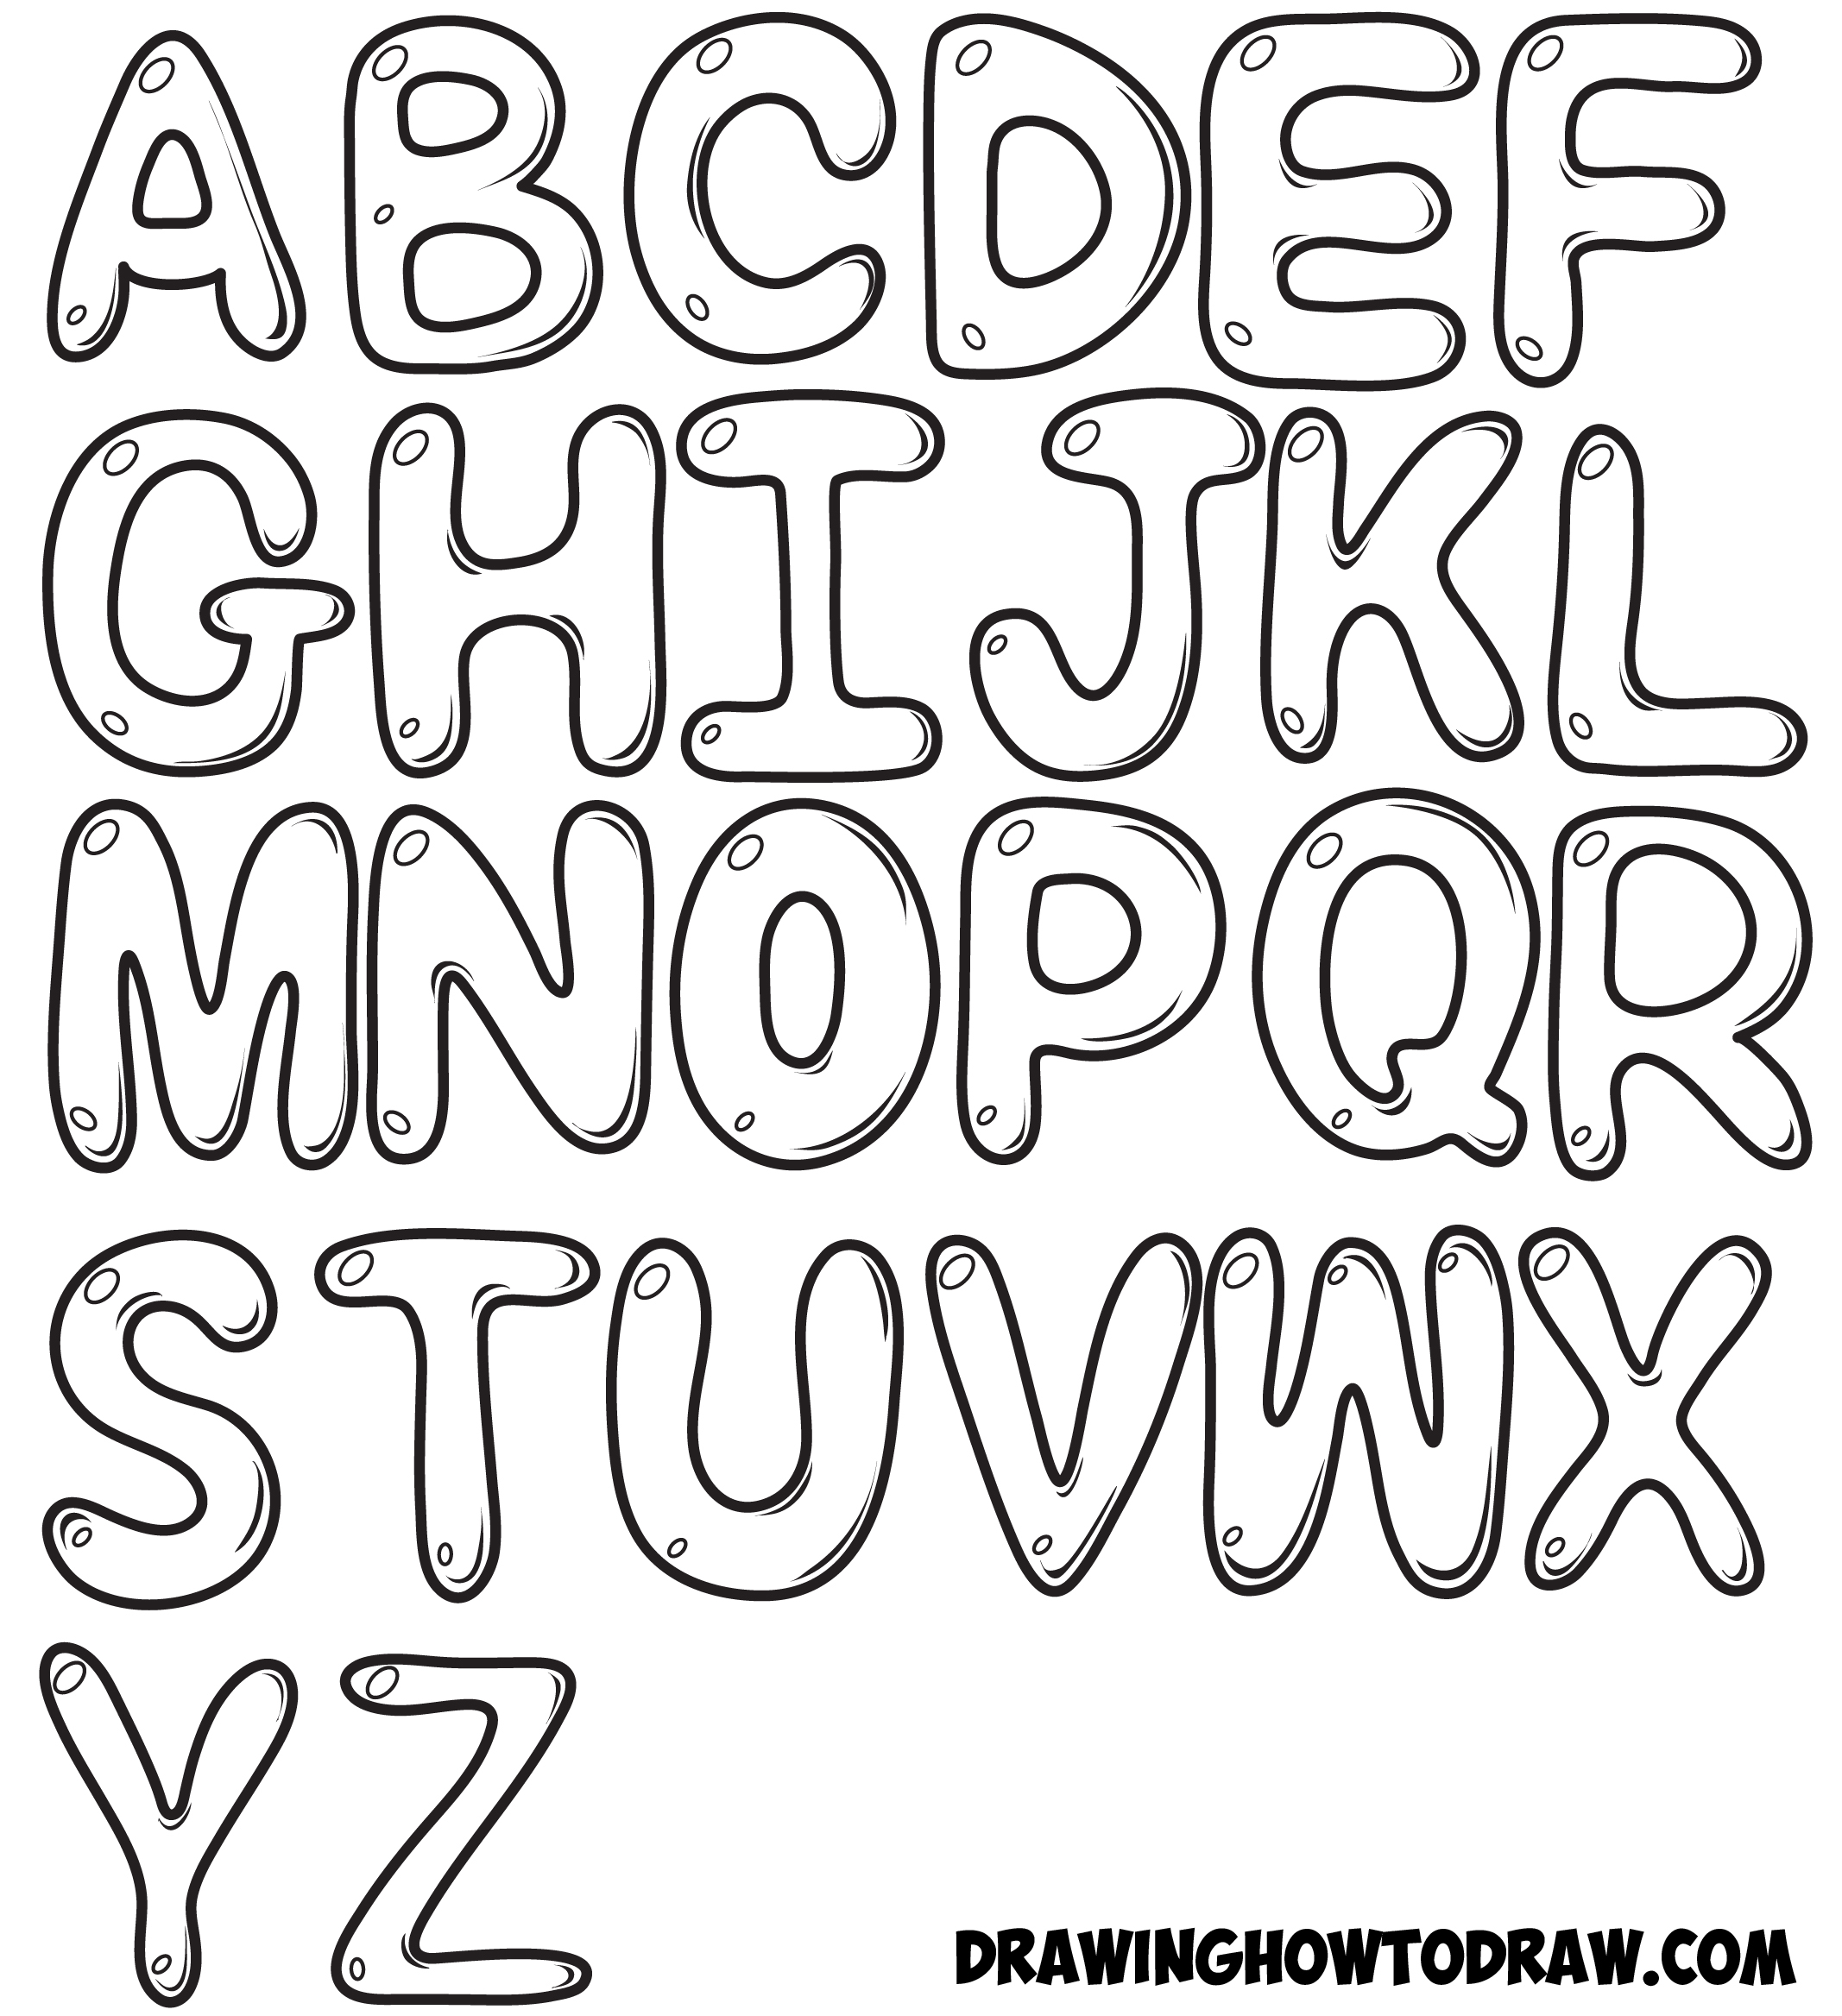 Block letters drawing at getdrawings free for personal use 2134x2336 pics of cool block letters to draw how can you draw bubble letters thecheapjerseys Choice Image